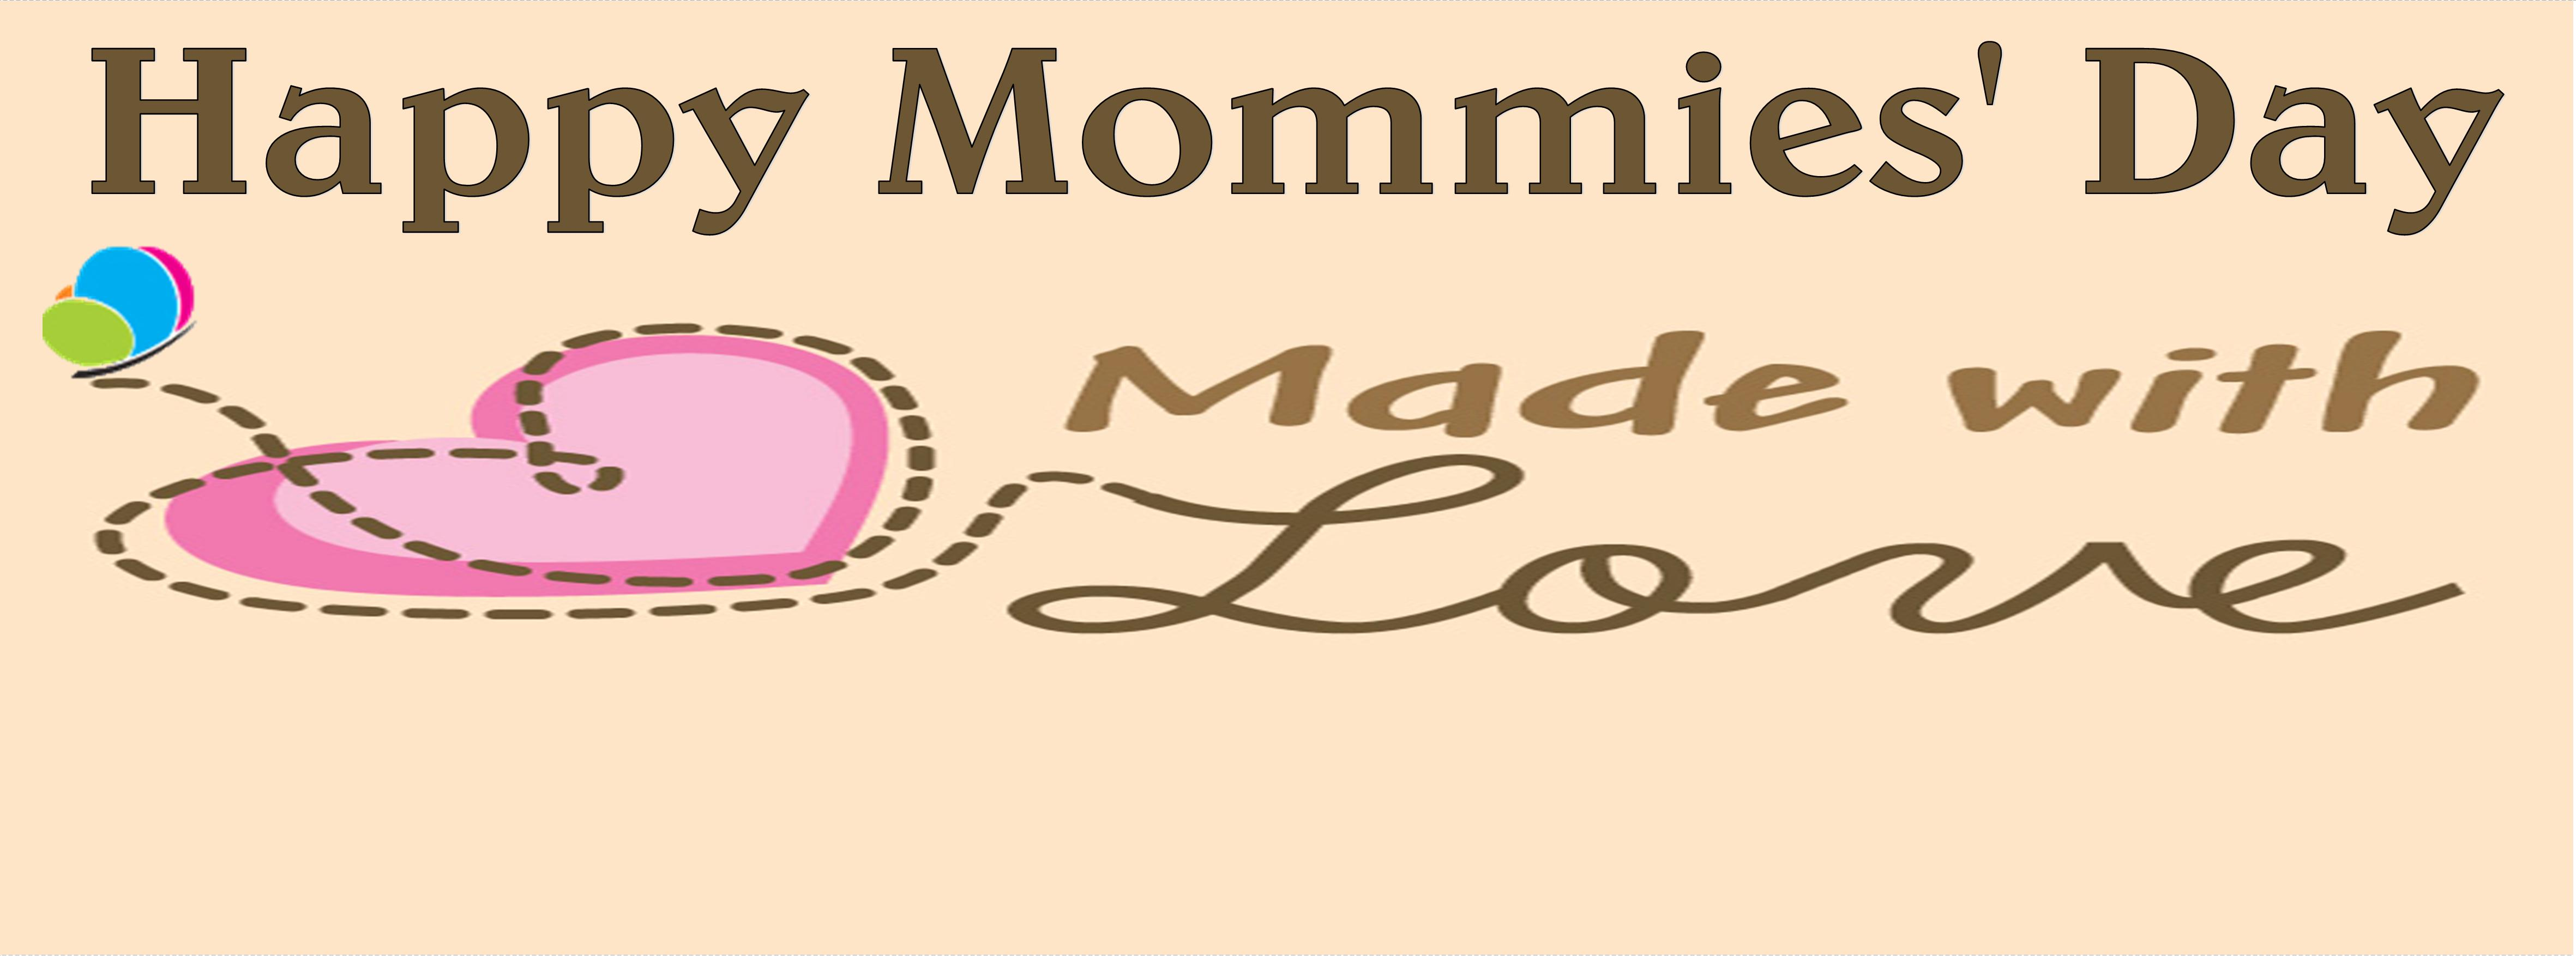 Happy Mommies Day Blue Team